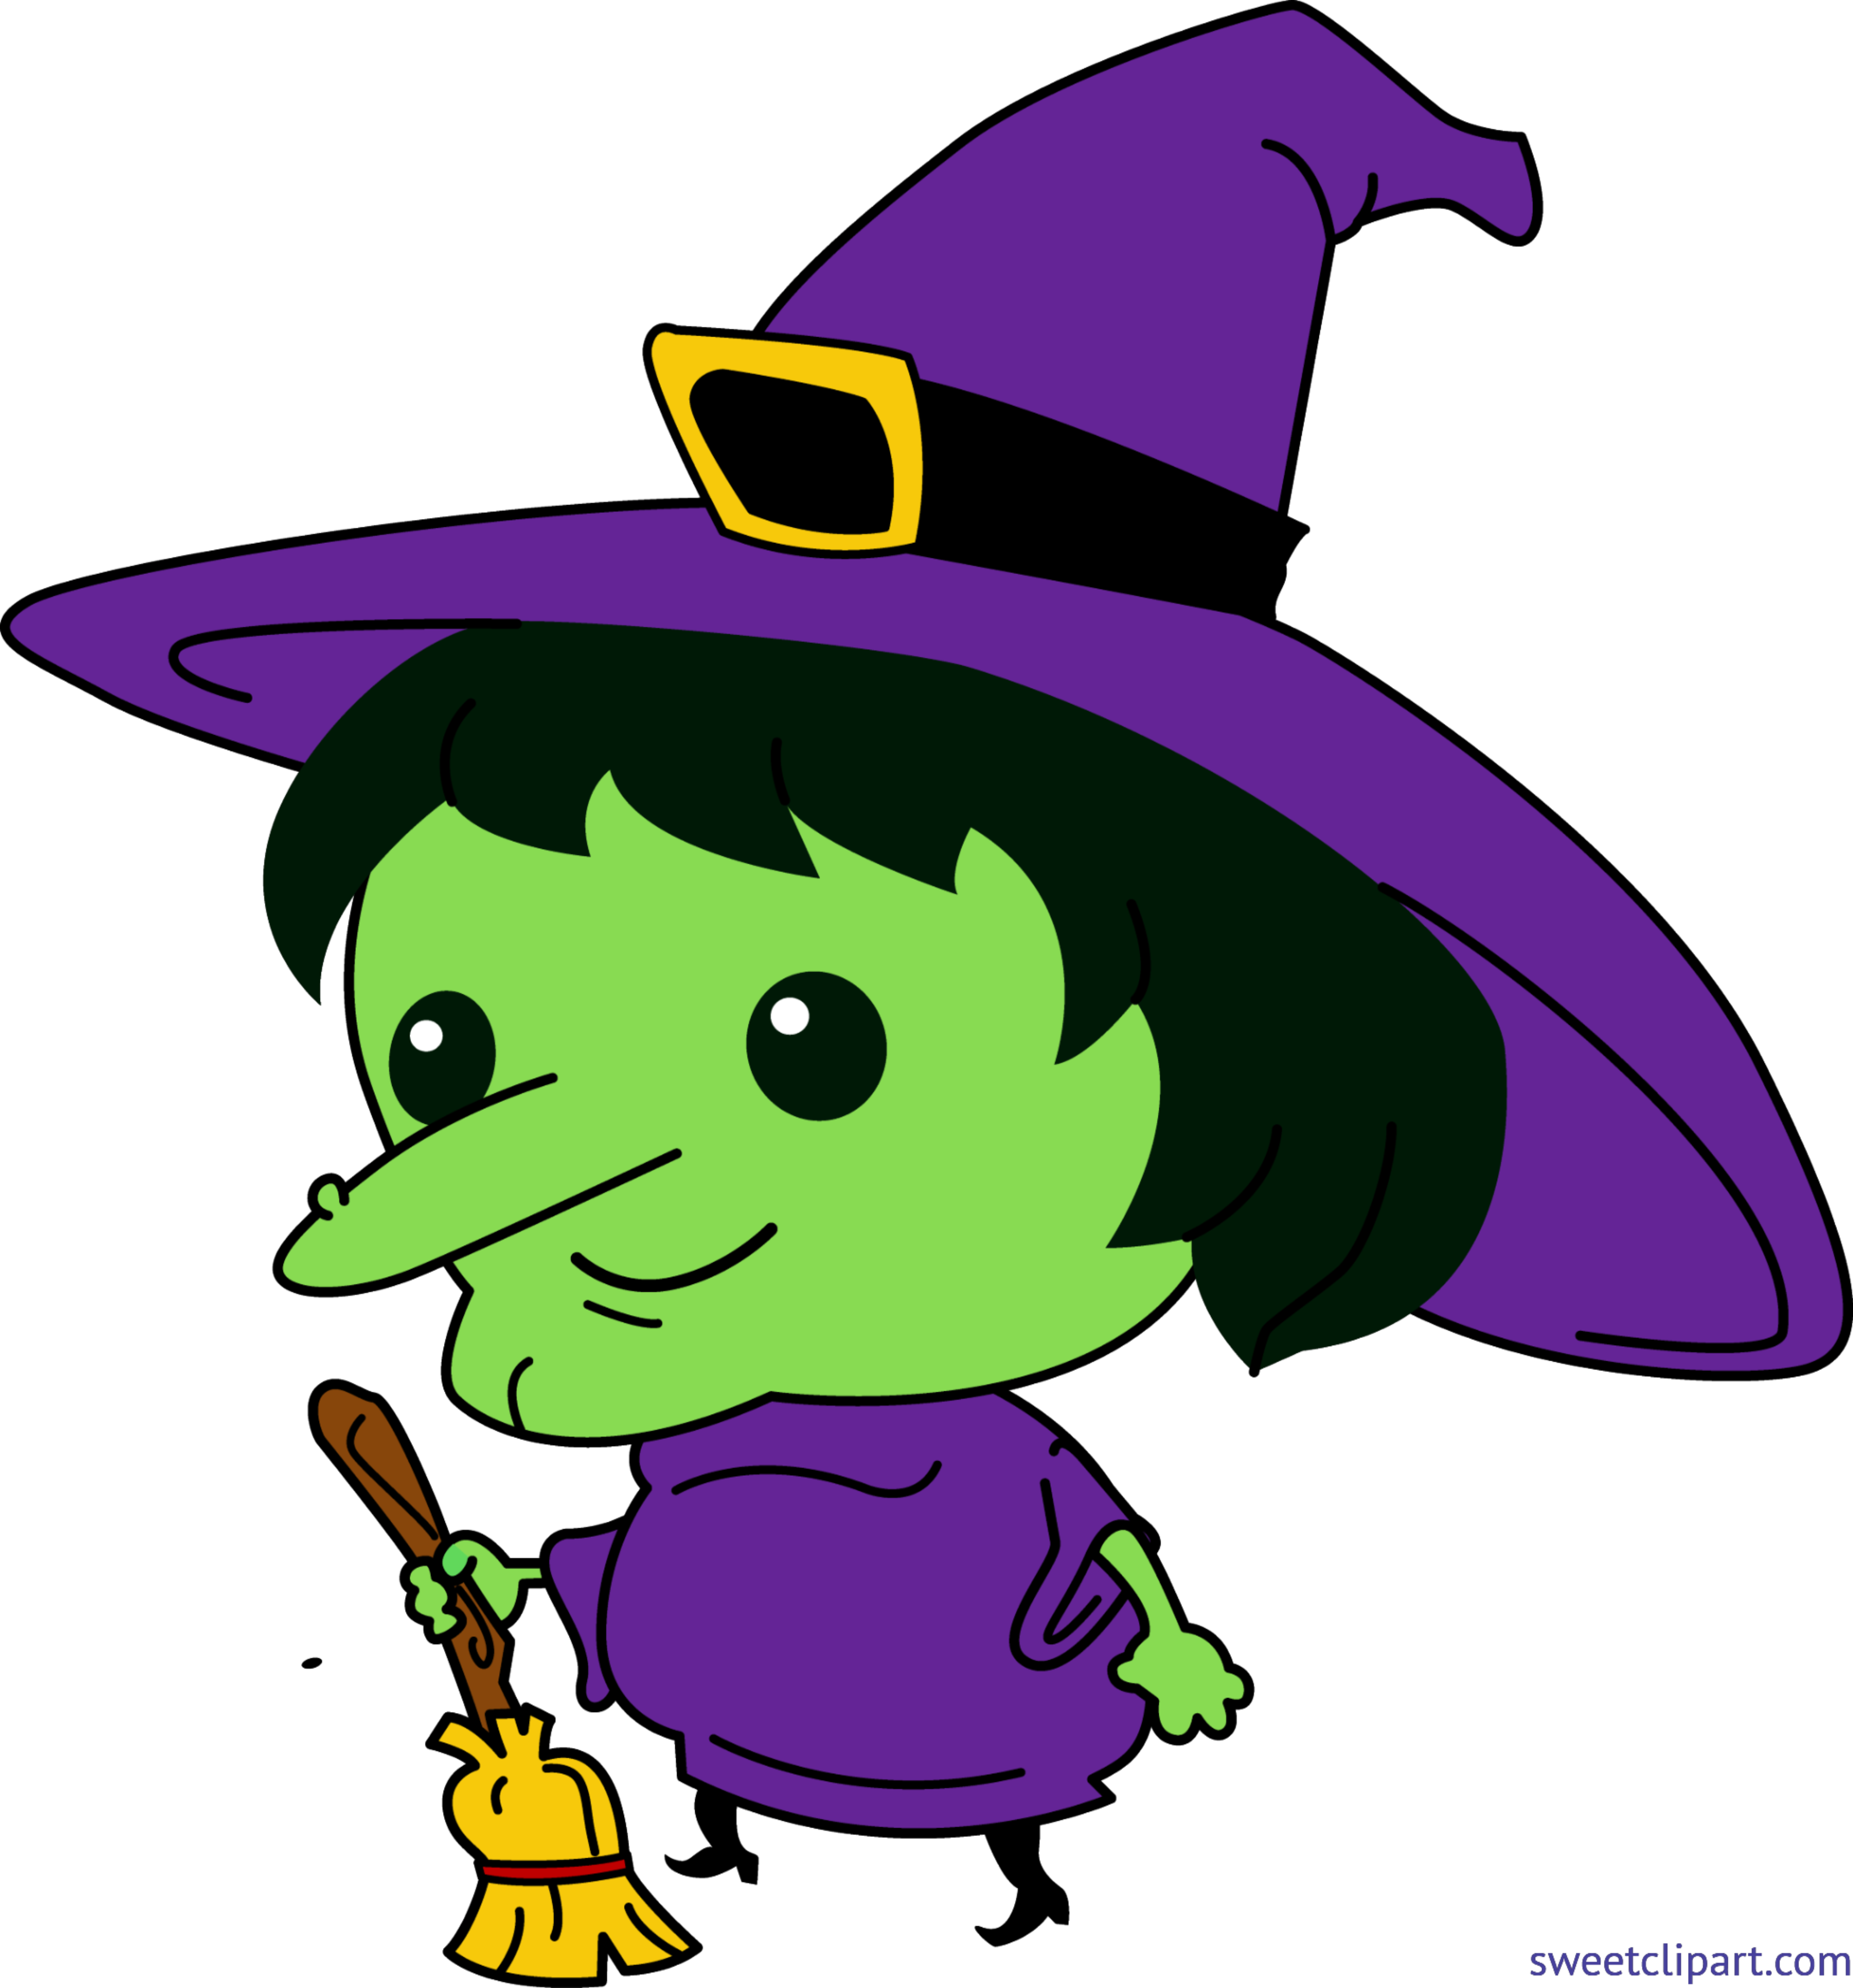 Cute clip art sweet. Witch clipart purple witch